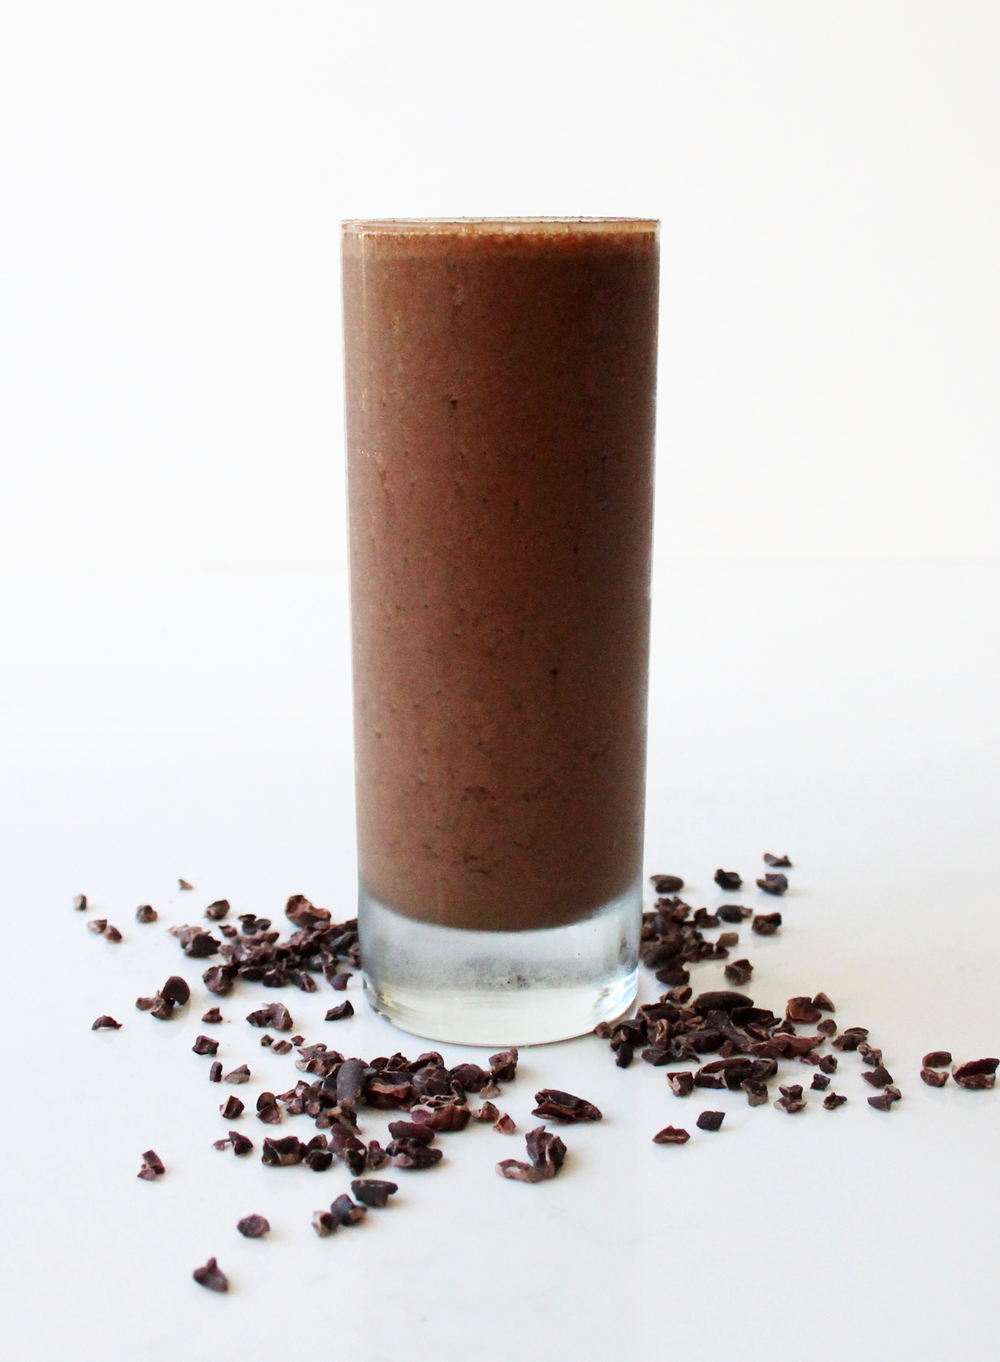 Cacao Chip This cacao and maca based smoothie has hints of chocolate, cinnamon, and cayenne that give this frappuccino-like drink a sophisticated flair. --- cacao, maca, nibs, vegan chocolate chip, almond butter, agave, cinnamon, cayenne, banana, coconut milk